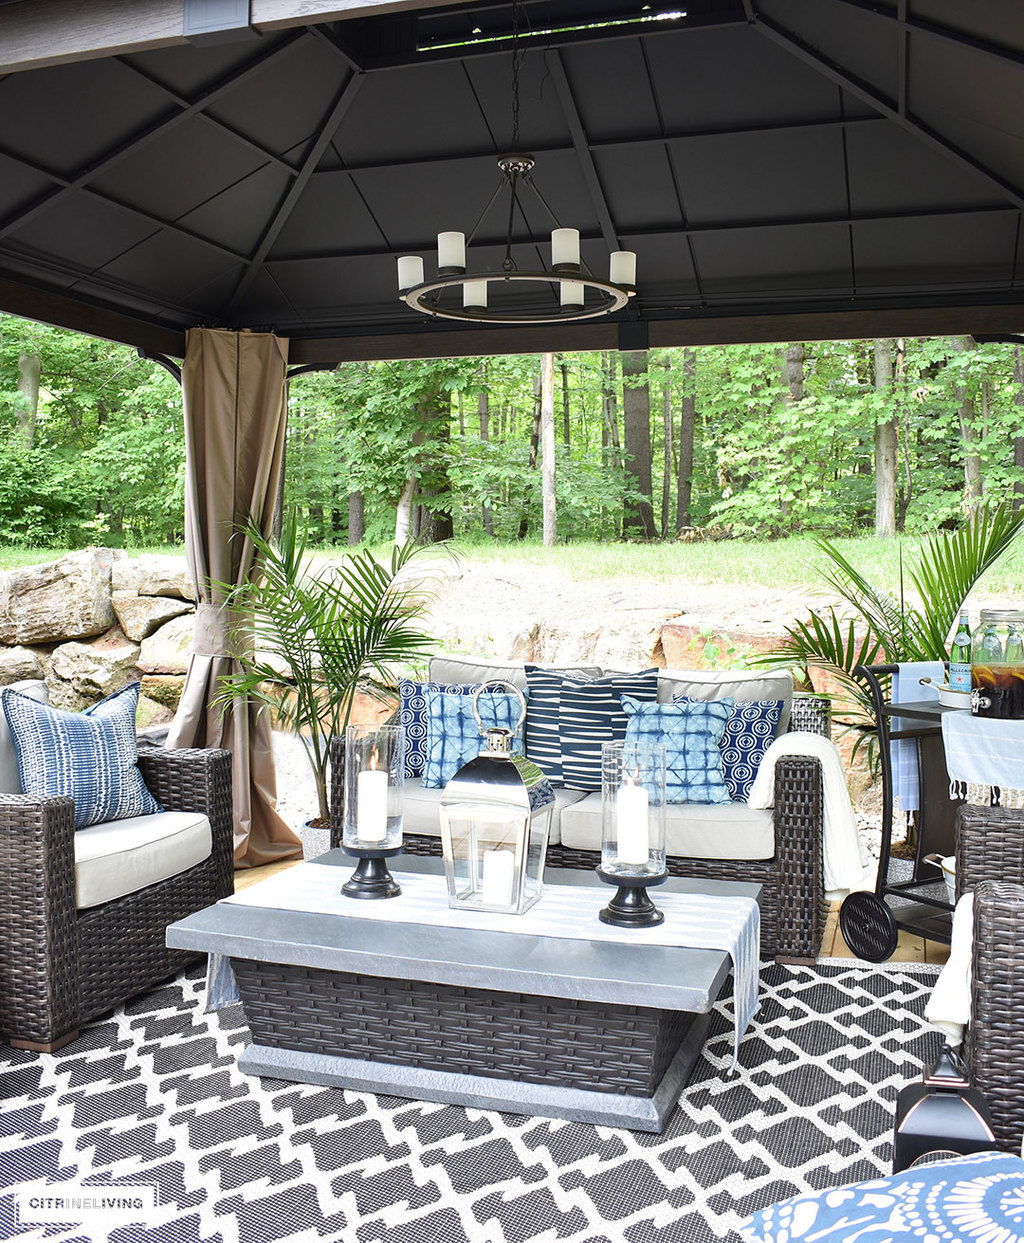 Create The Perfect Lounging Area In Your Backyard With A Beautiful Covered  Gazebo, With Added